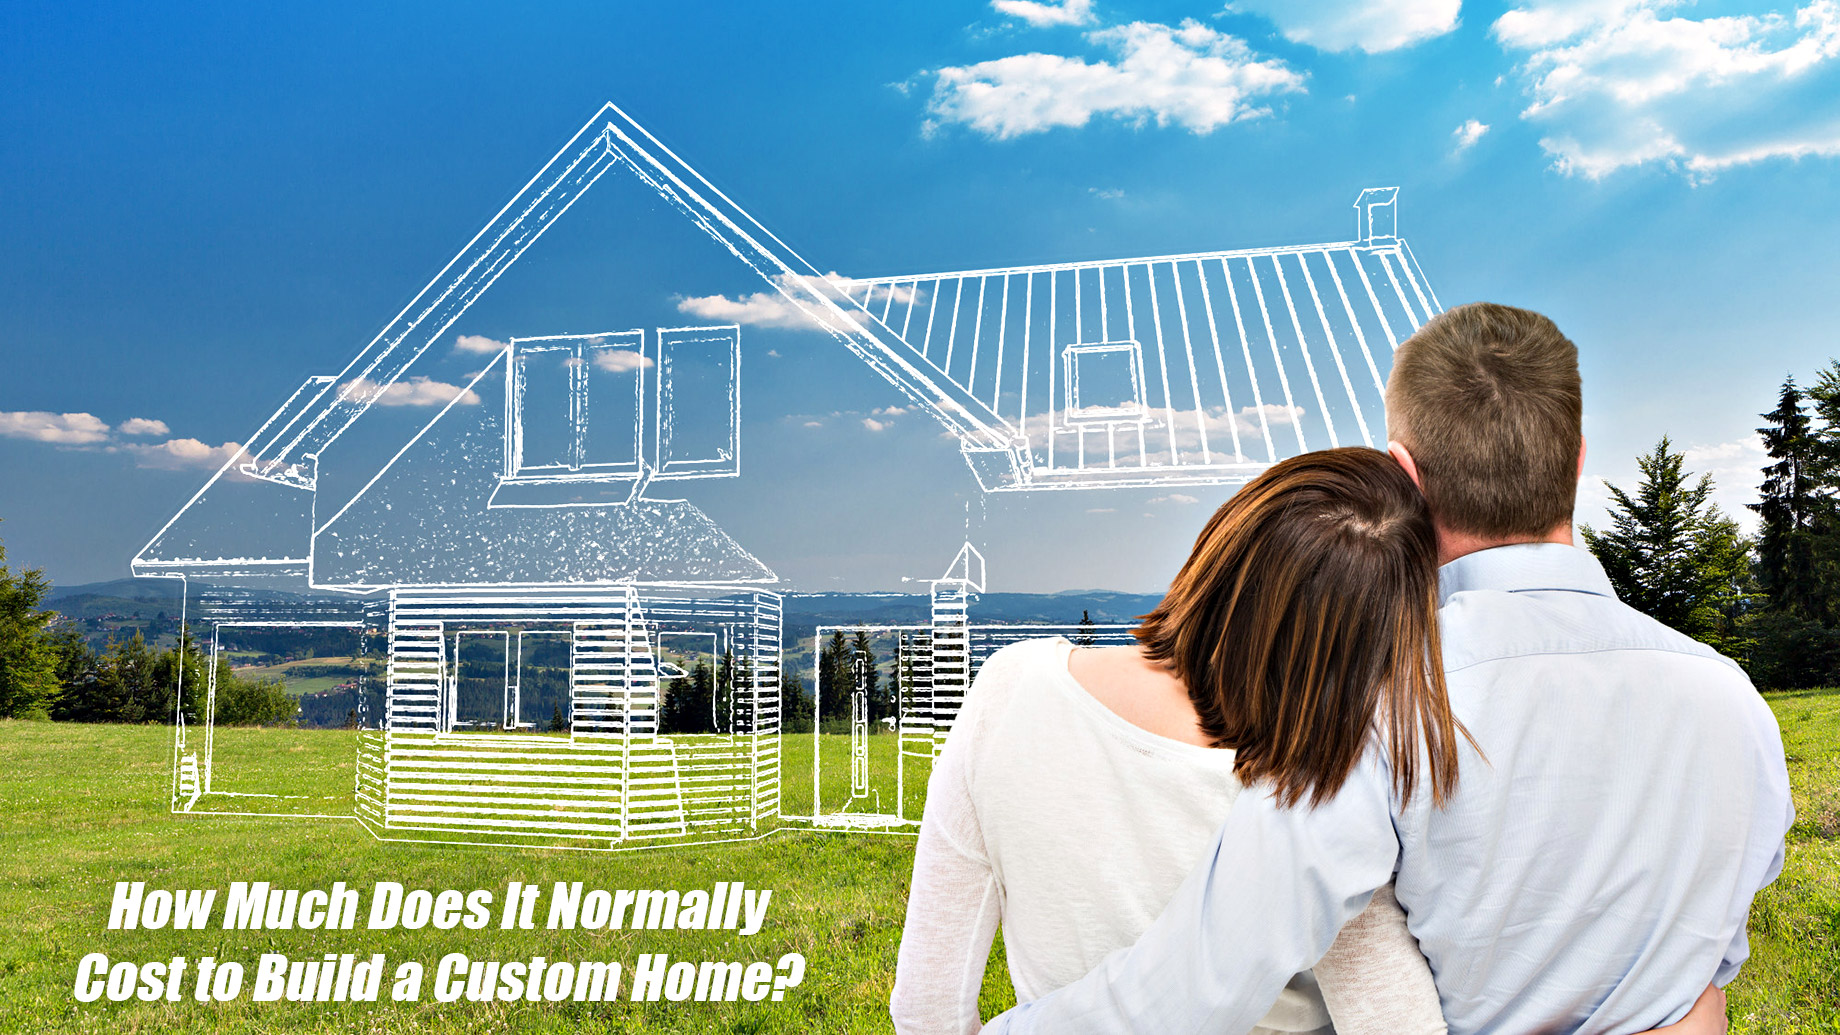 How Much Does It Normally Cost to Build a Custom Home?